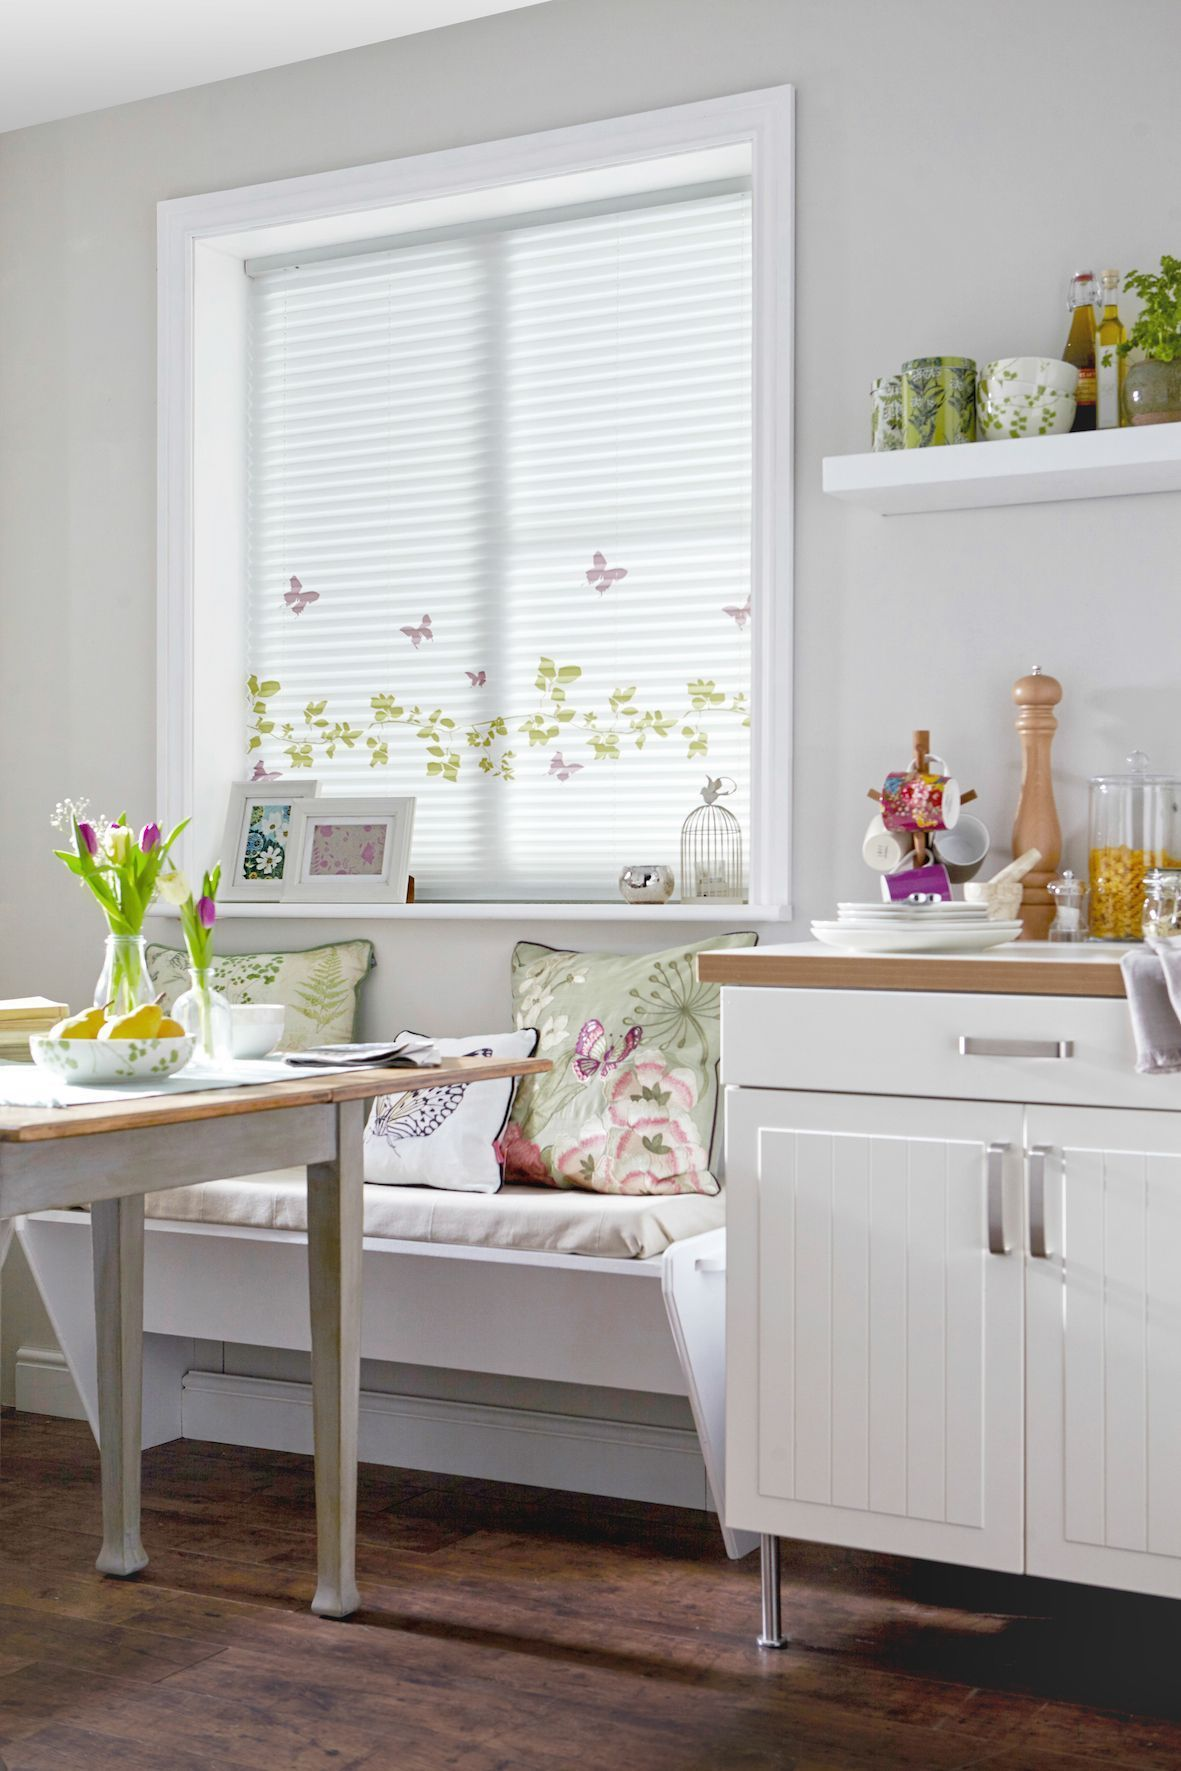 Vine u butterfly pleated blind by style studio white home decor